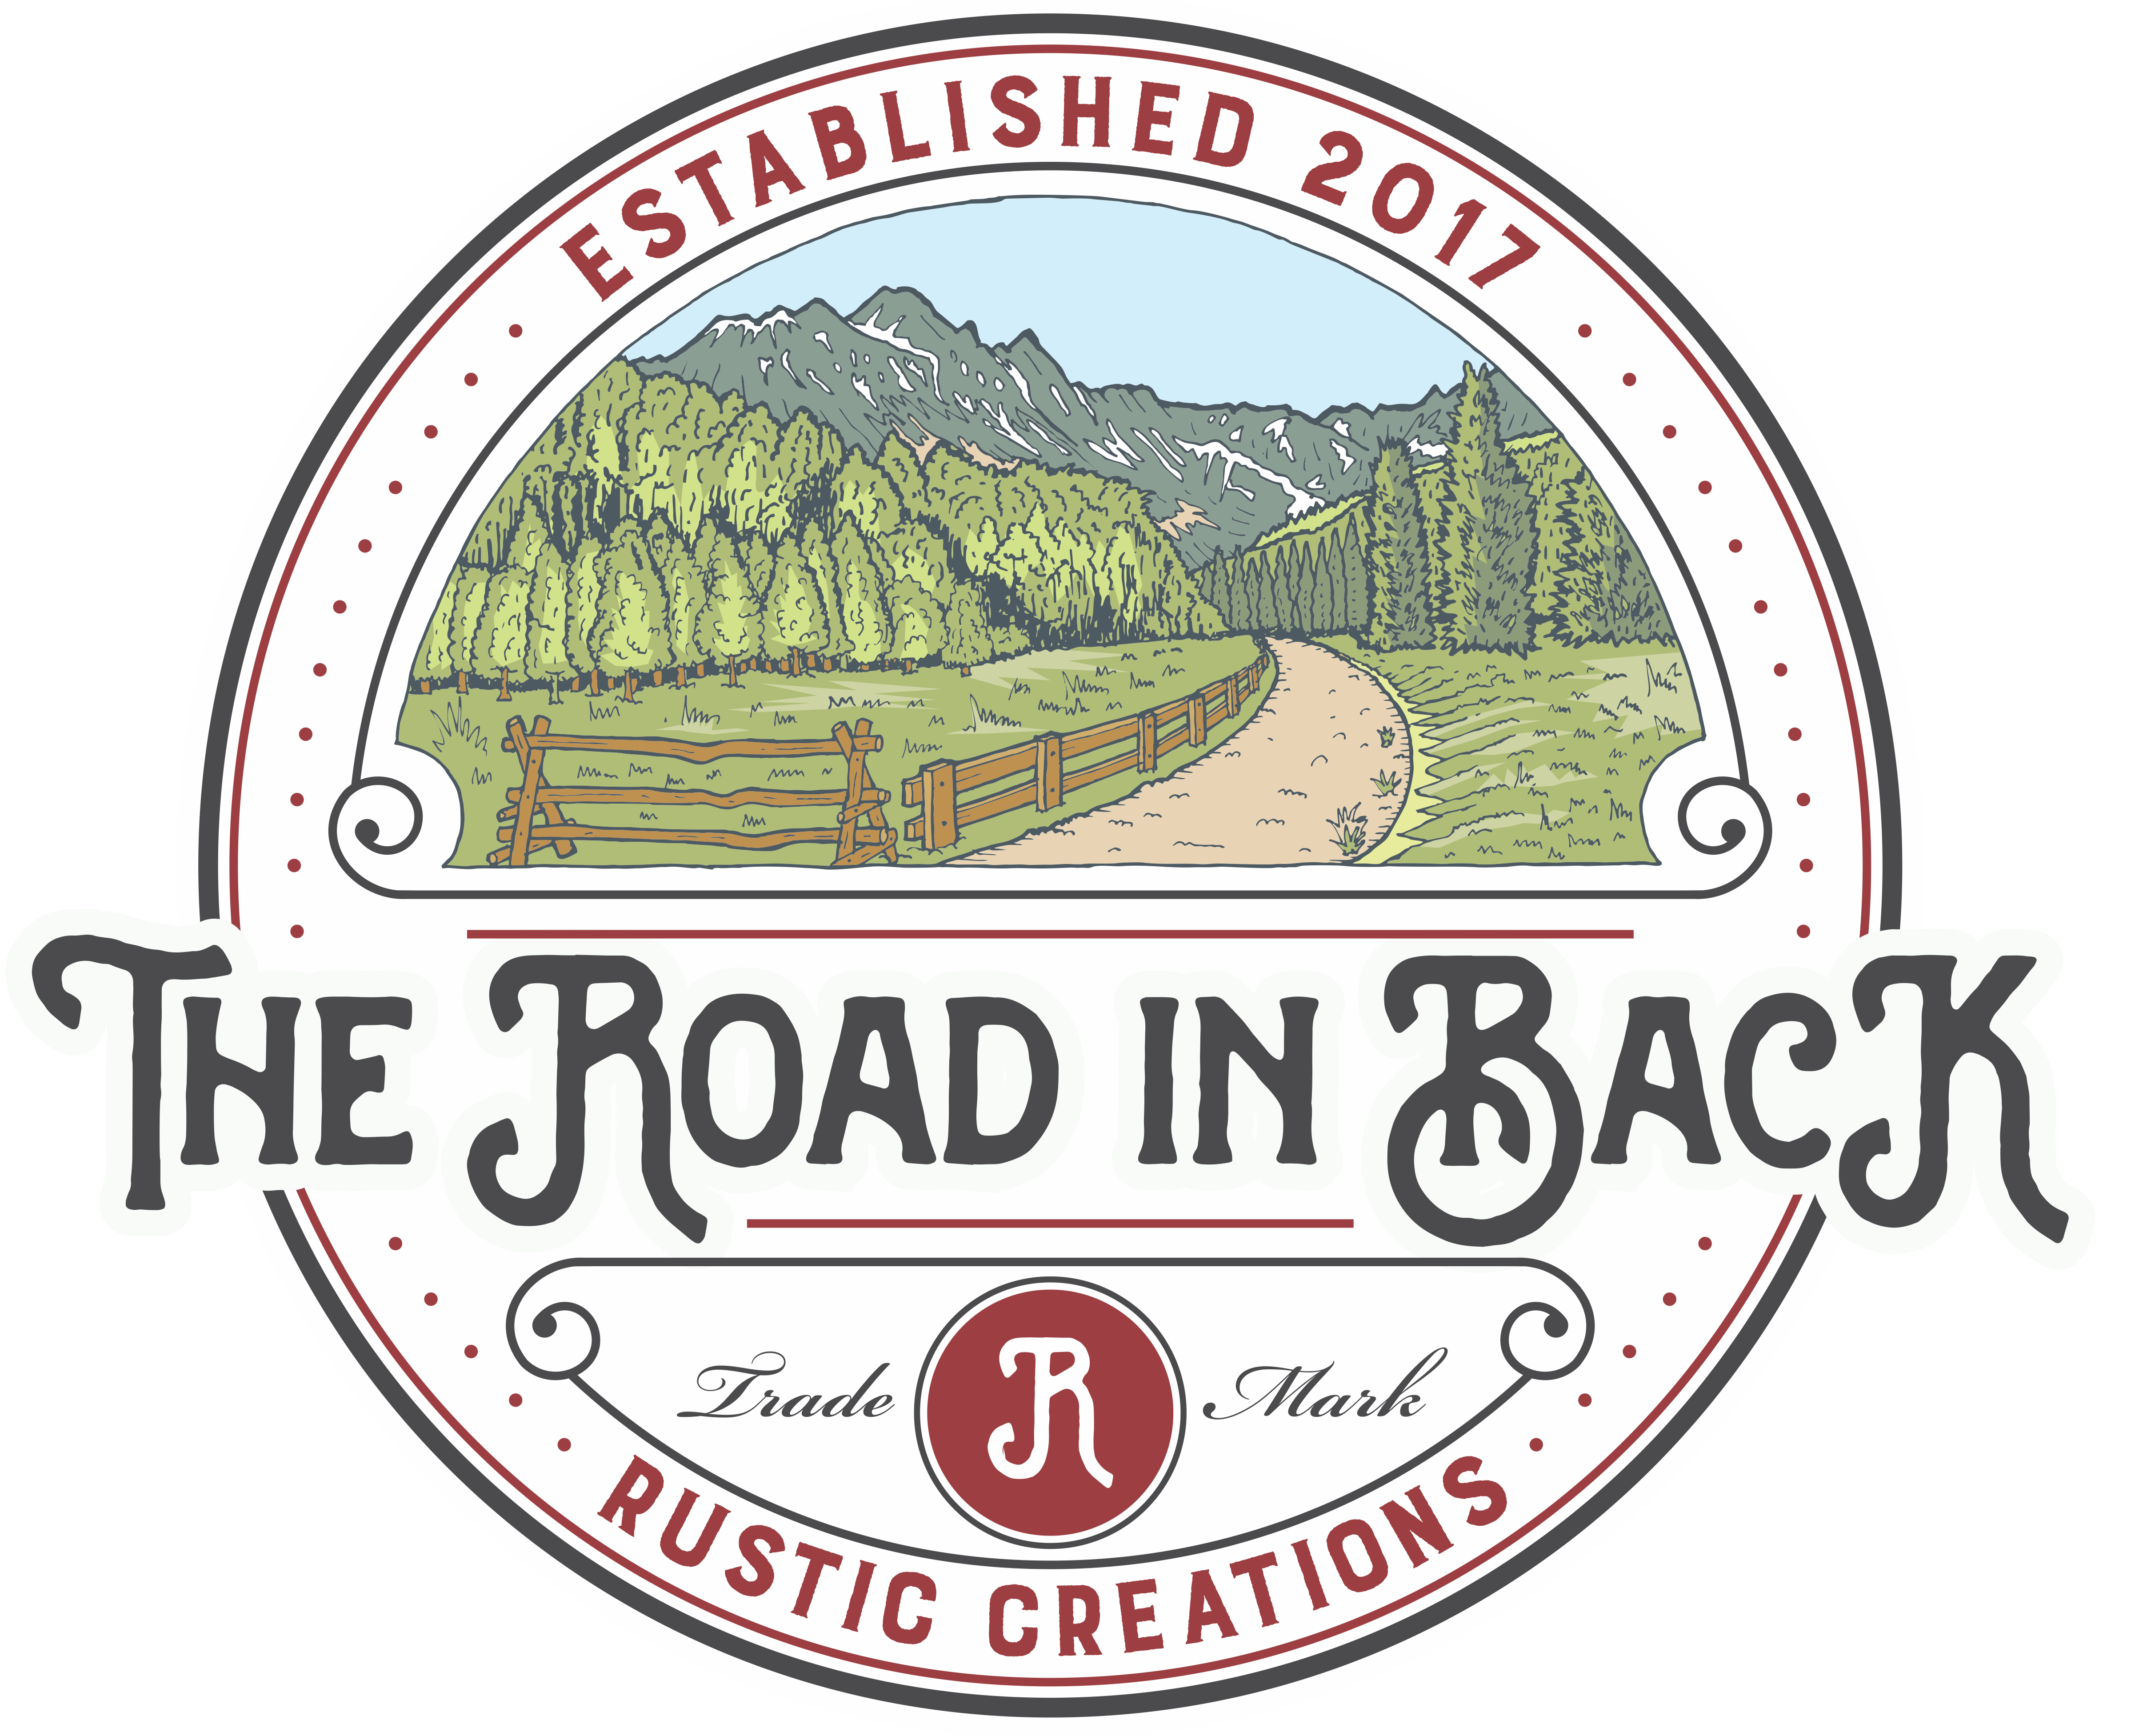 The Road in Back